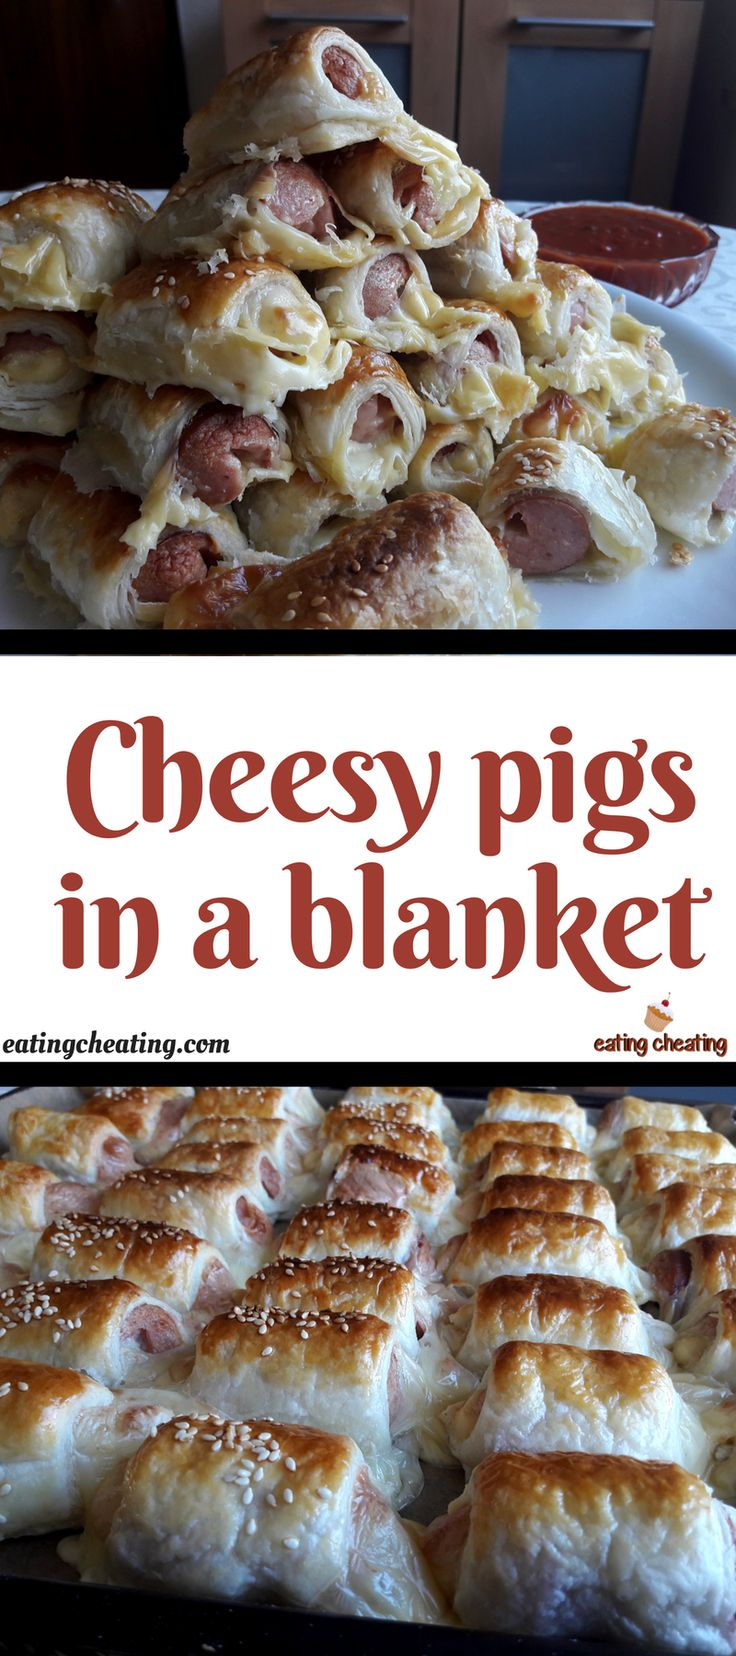 For this cheat meal recipe I prepared cute pigs in a blanket with melting toast cheese. This recipe is so easy to make. Those pigs in a blanket are so cute and so delicious to dip them into some nice fresh sauce.